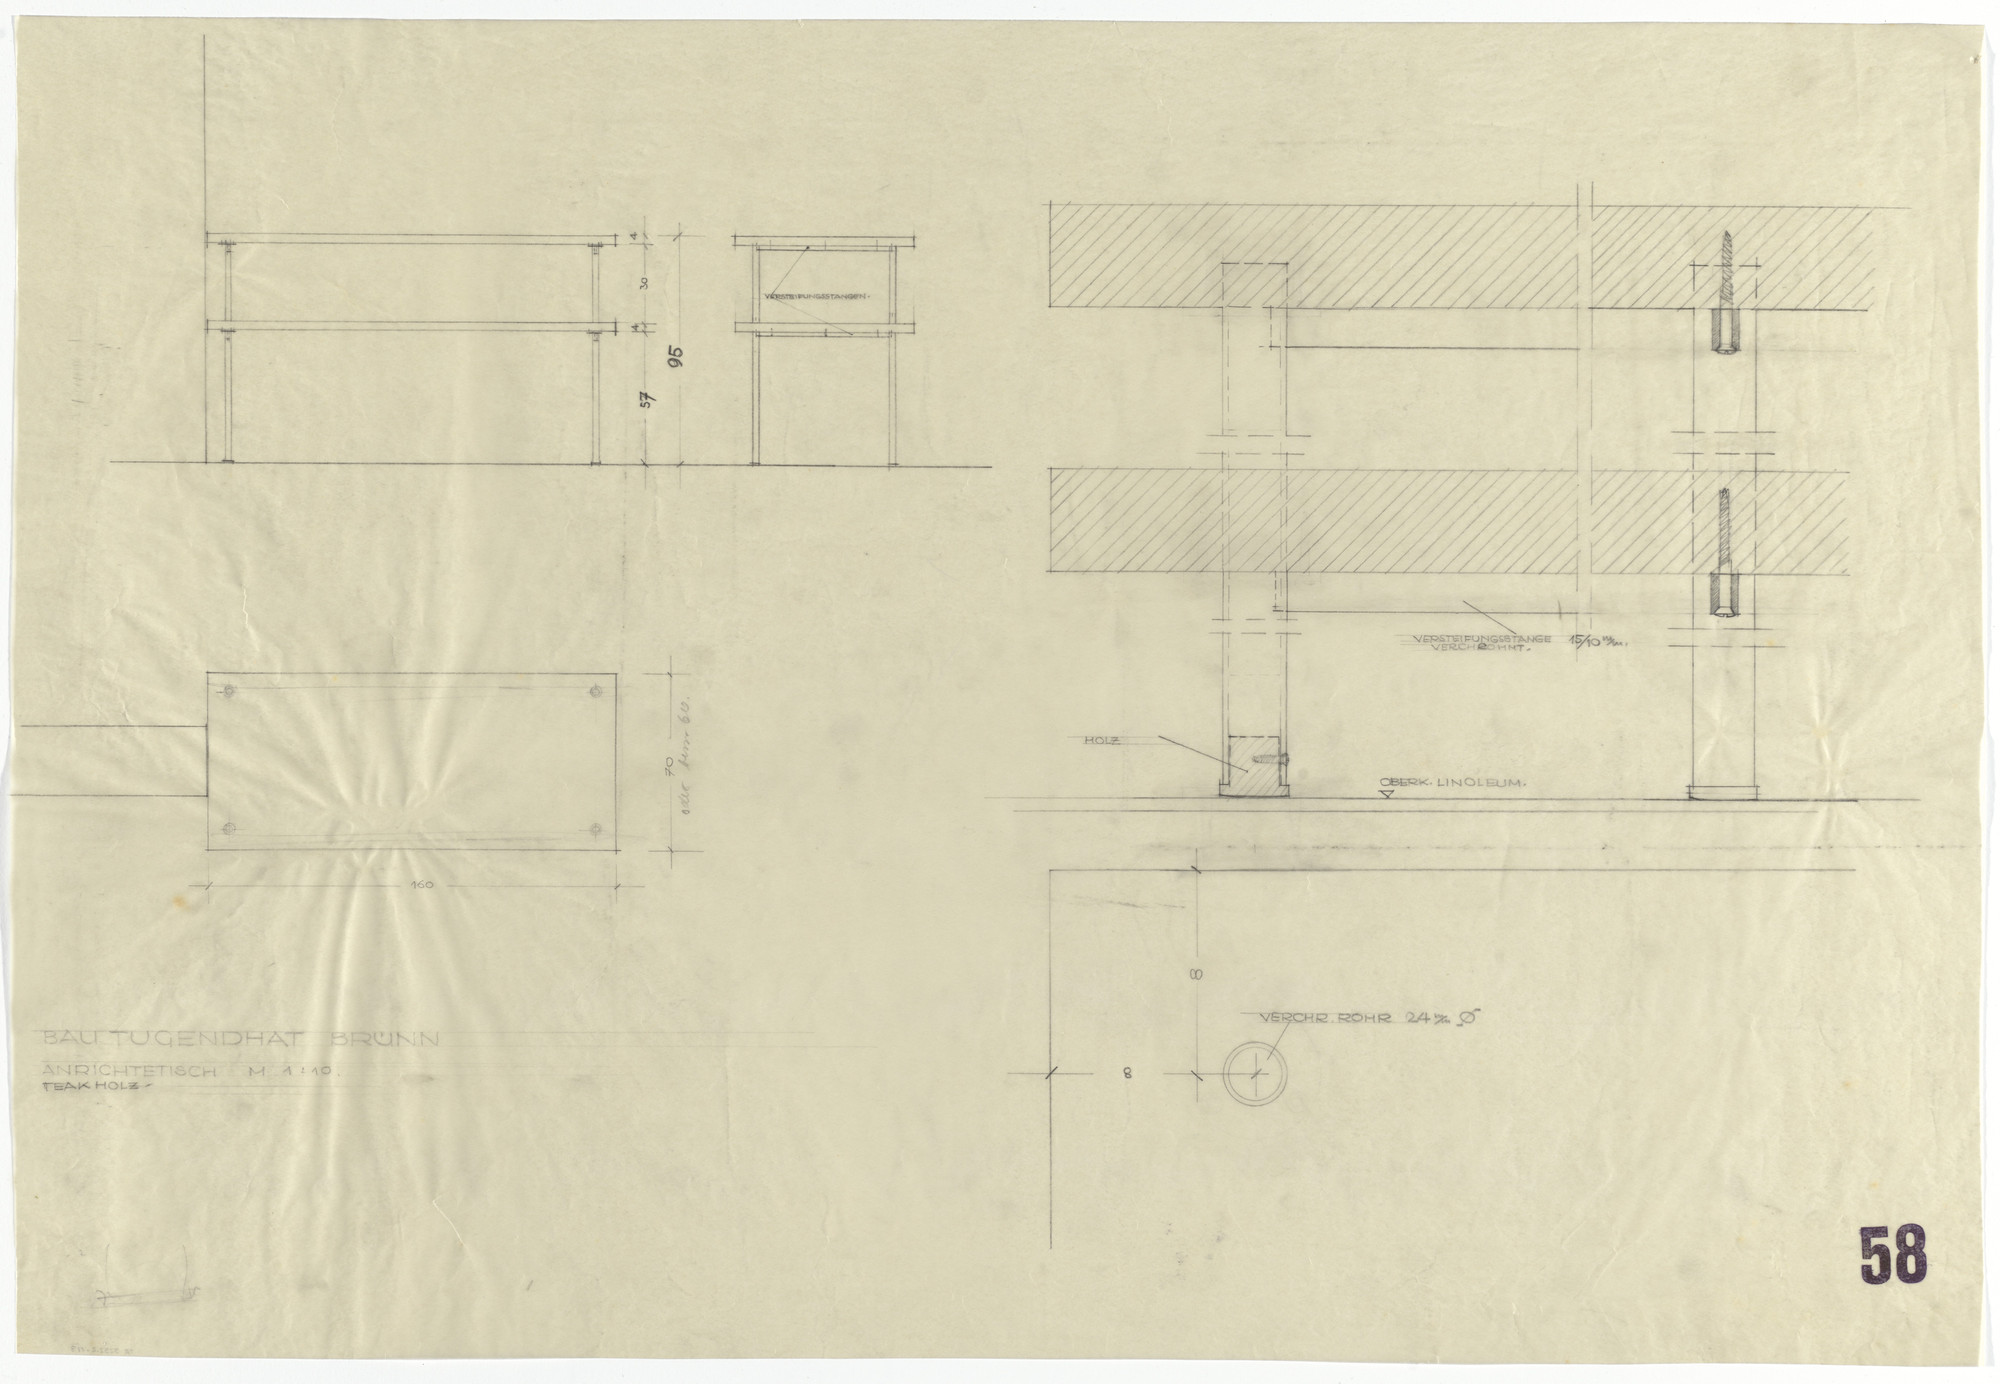 Ludwig Mies van der Rohe. Tugendhat House, Brno, Czech Republic (Plan, elevations and section; serving table). 1928-1930